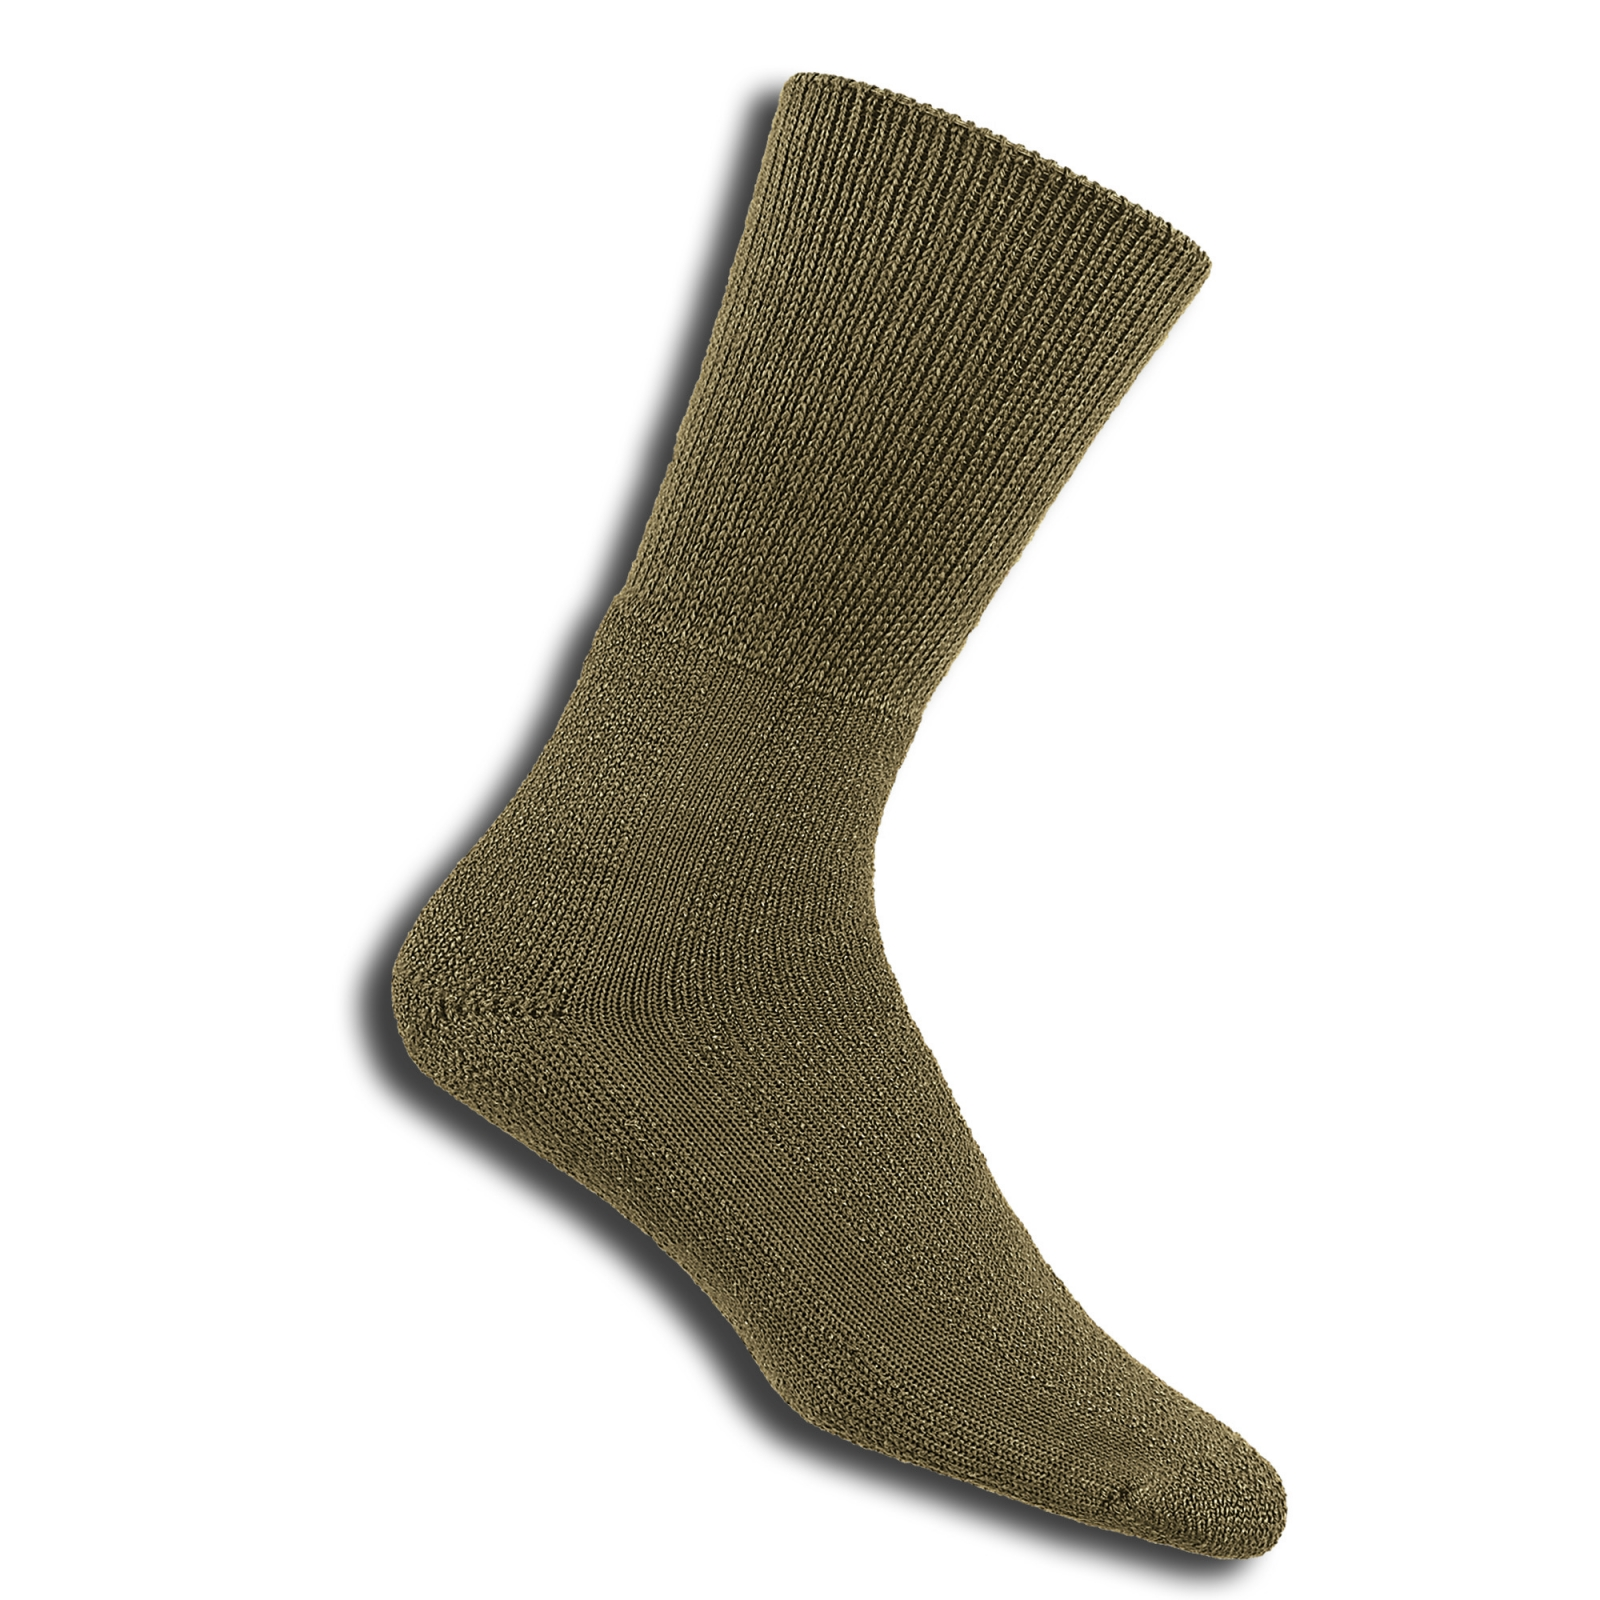 MB Military Boot Socks Mid-Calf